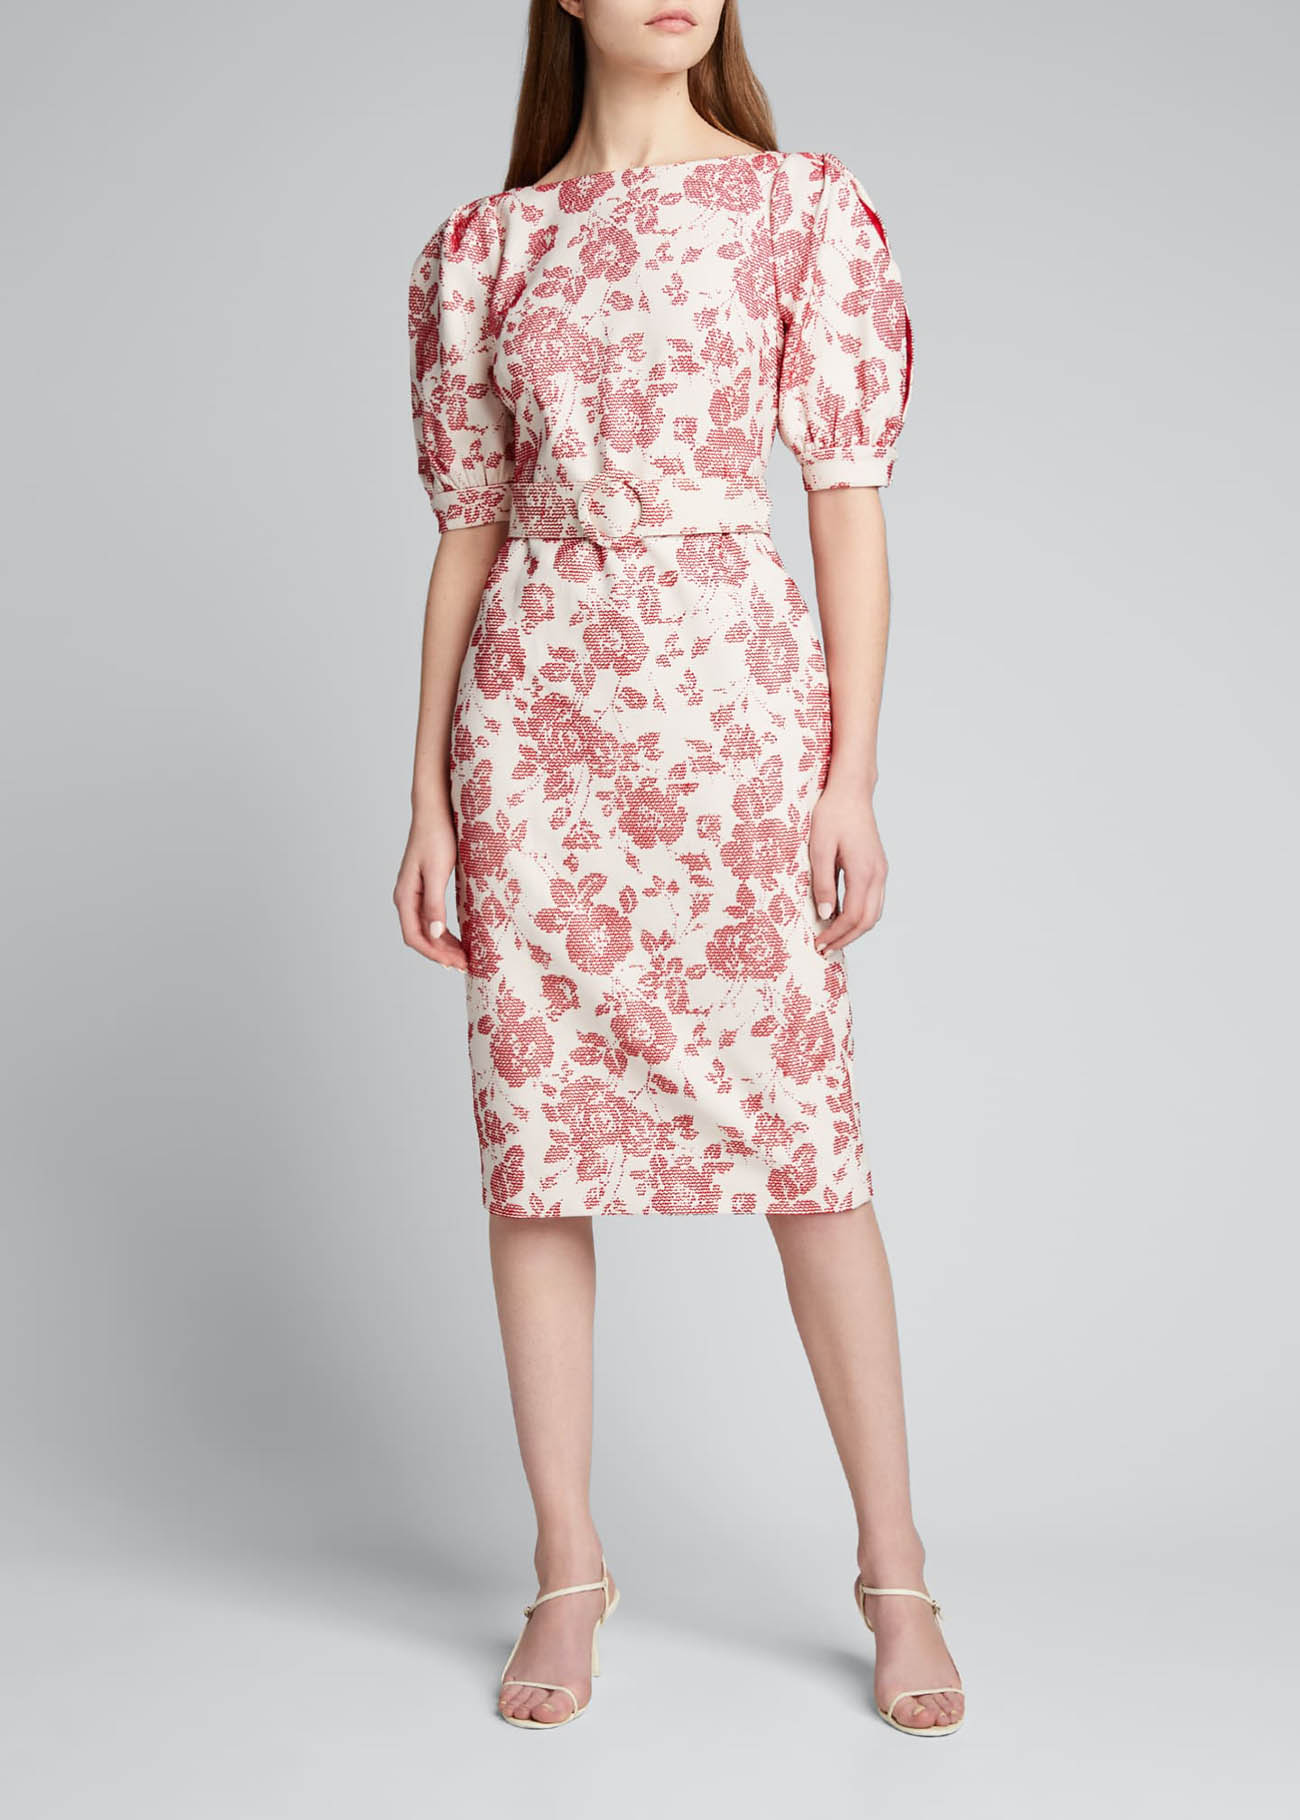 Floral Jacquard Puff-Sleeve Belted Sheath Dress for spring weddings